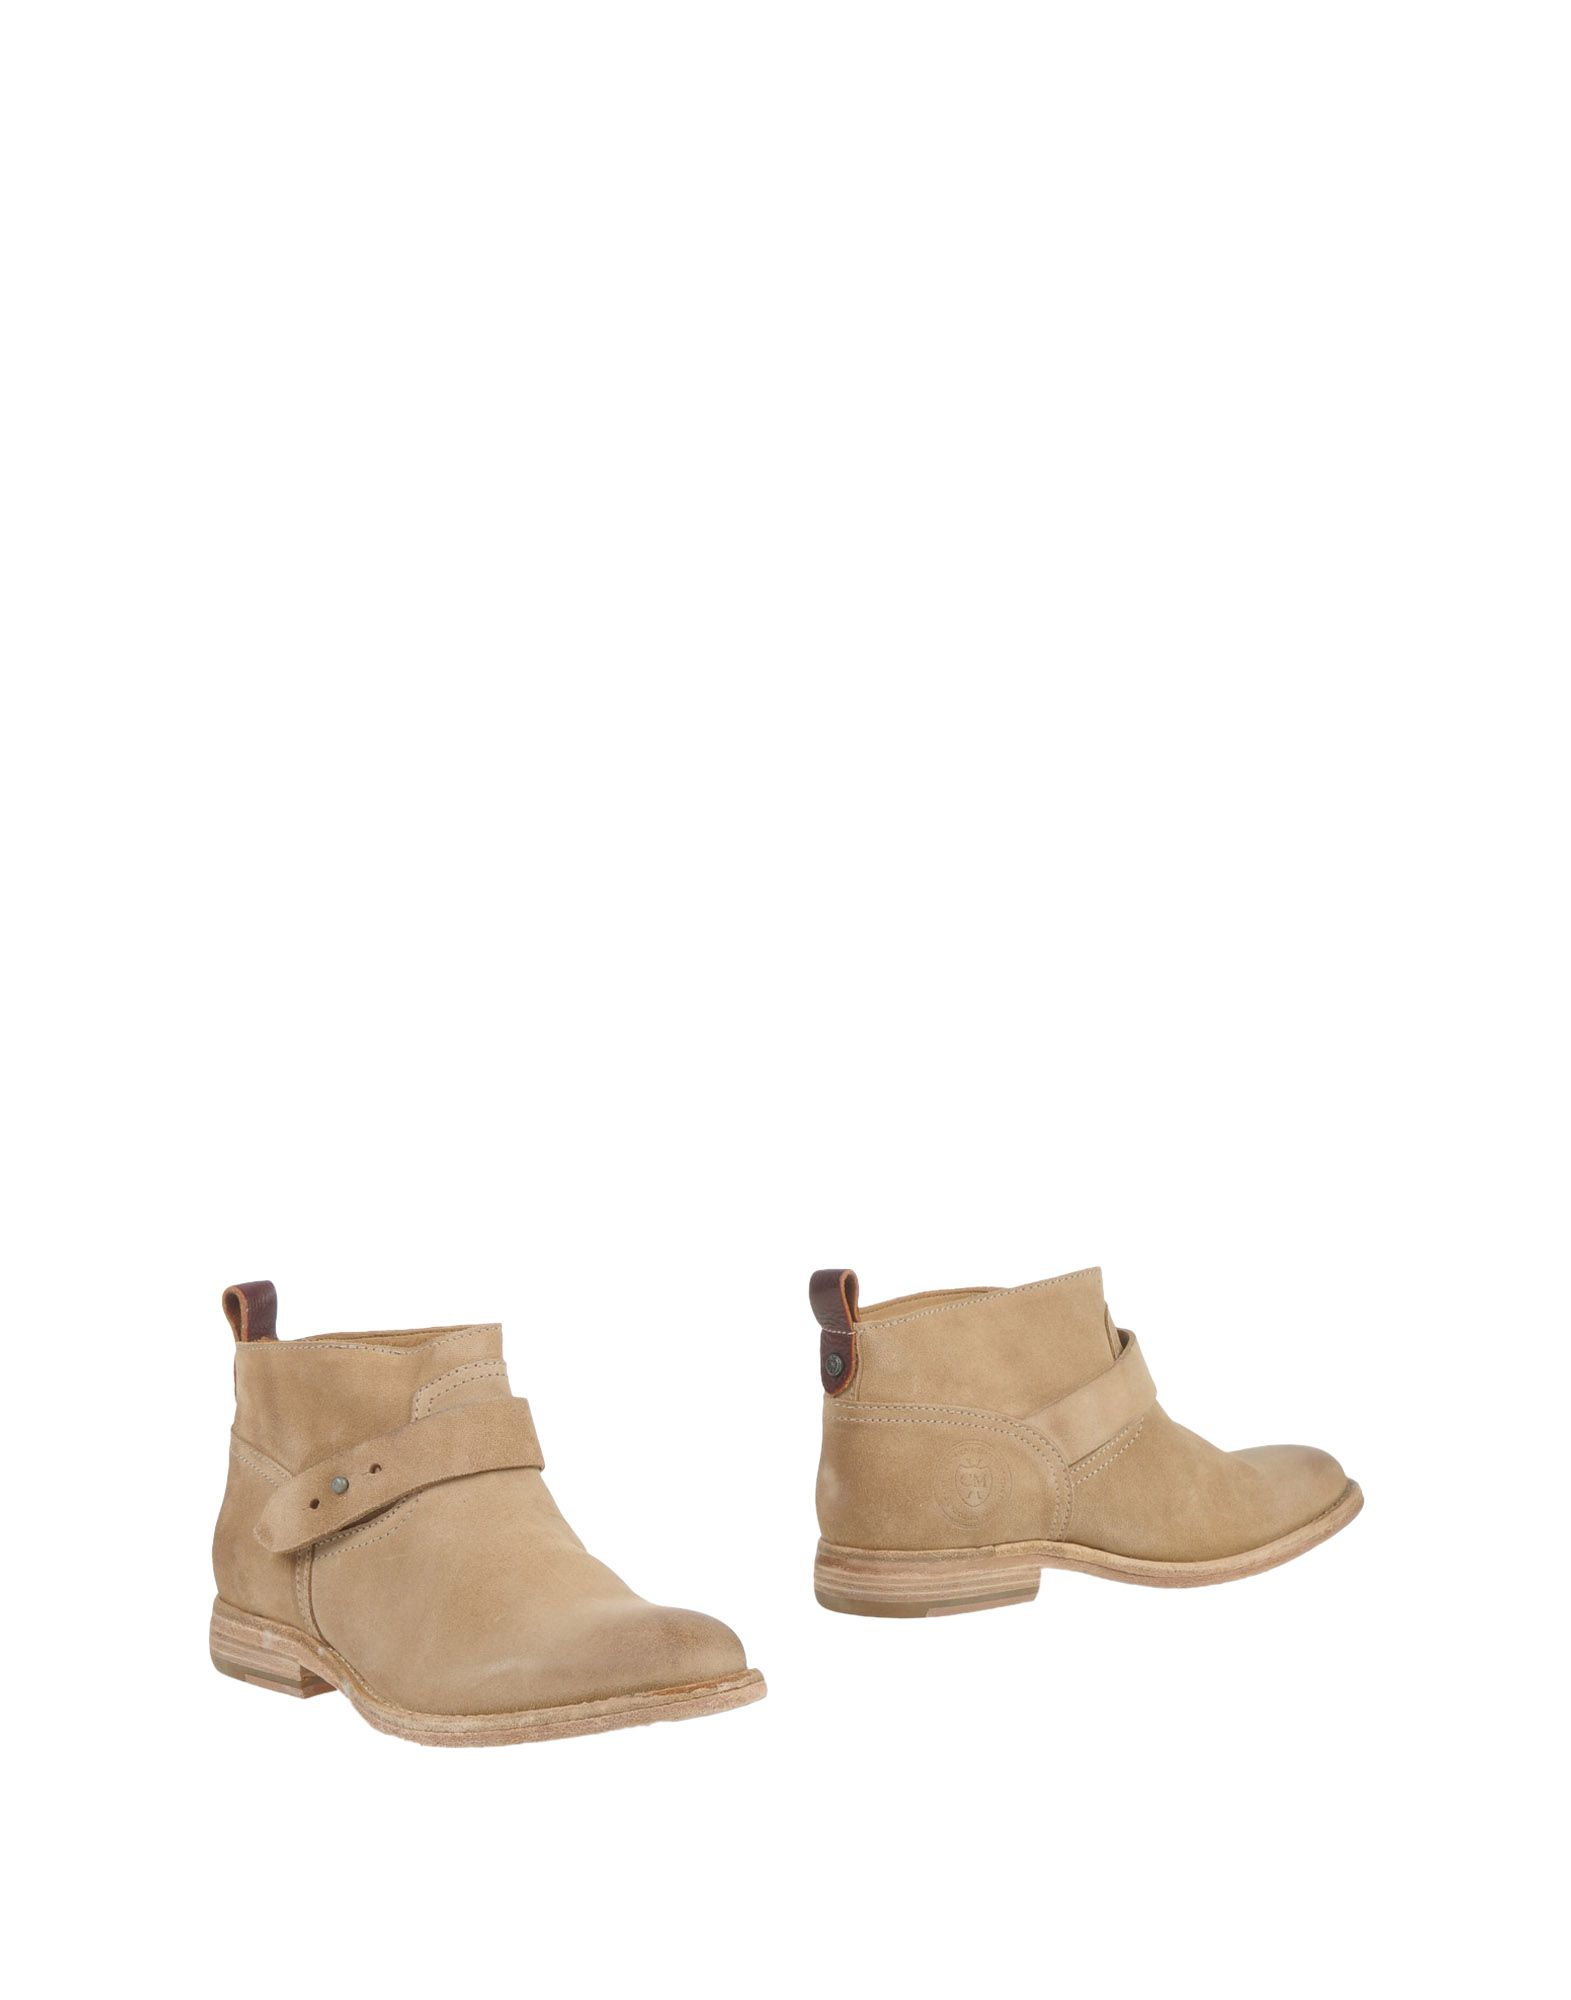 CATARINA MARTINS Ankle Boot in Sand